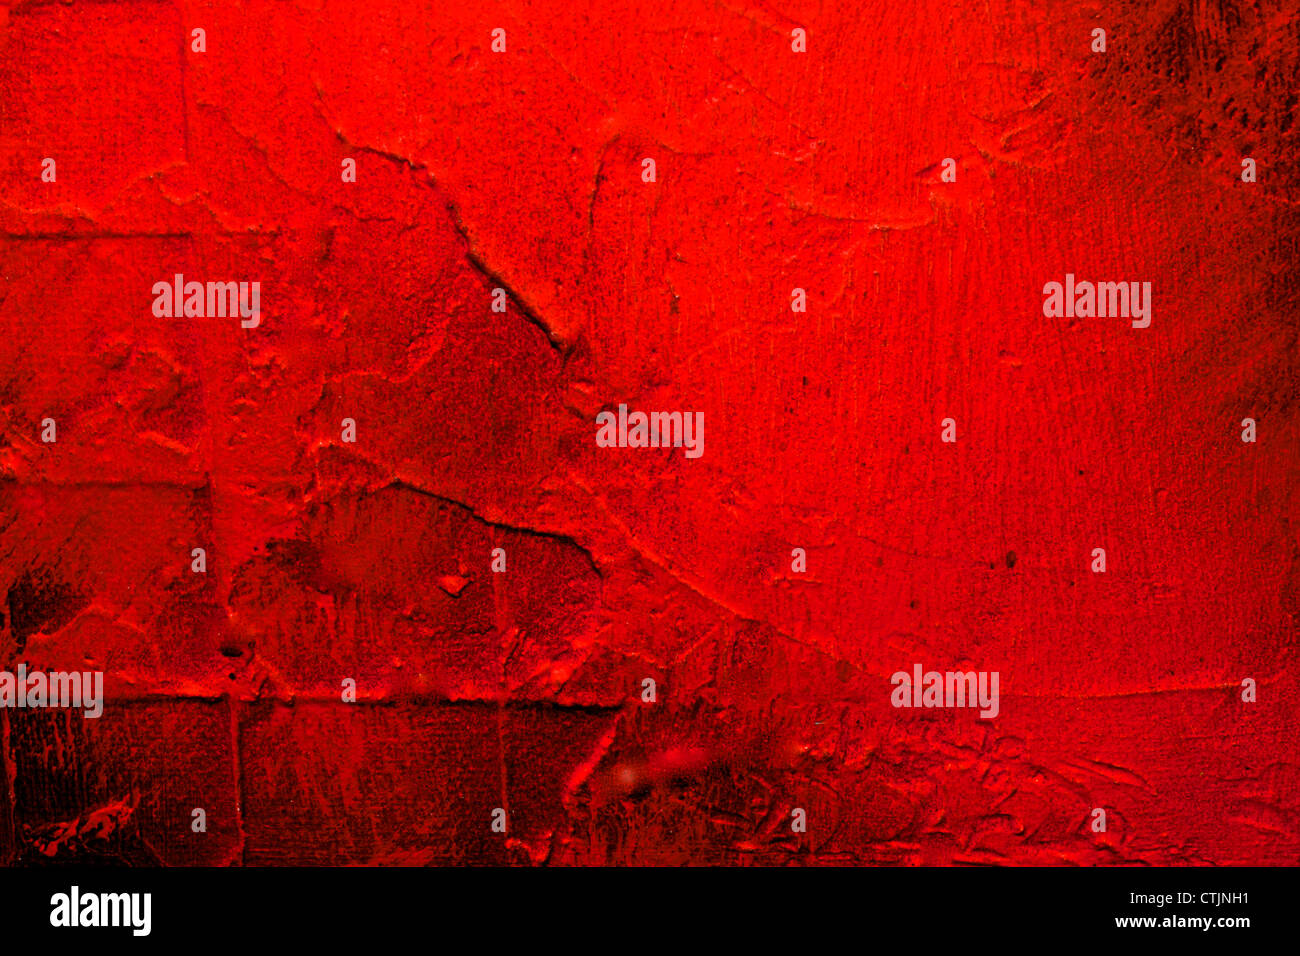 red background or frame with lots of texture and detail - Stock Image